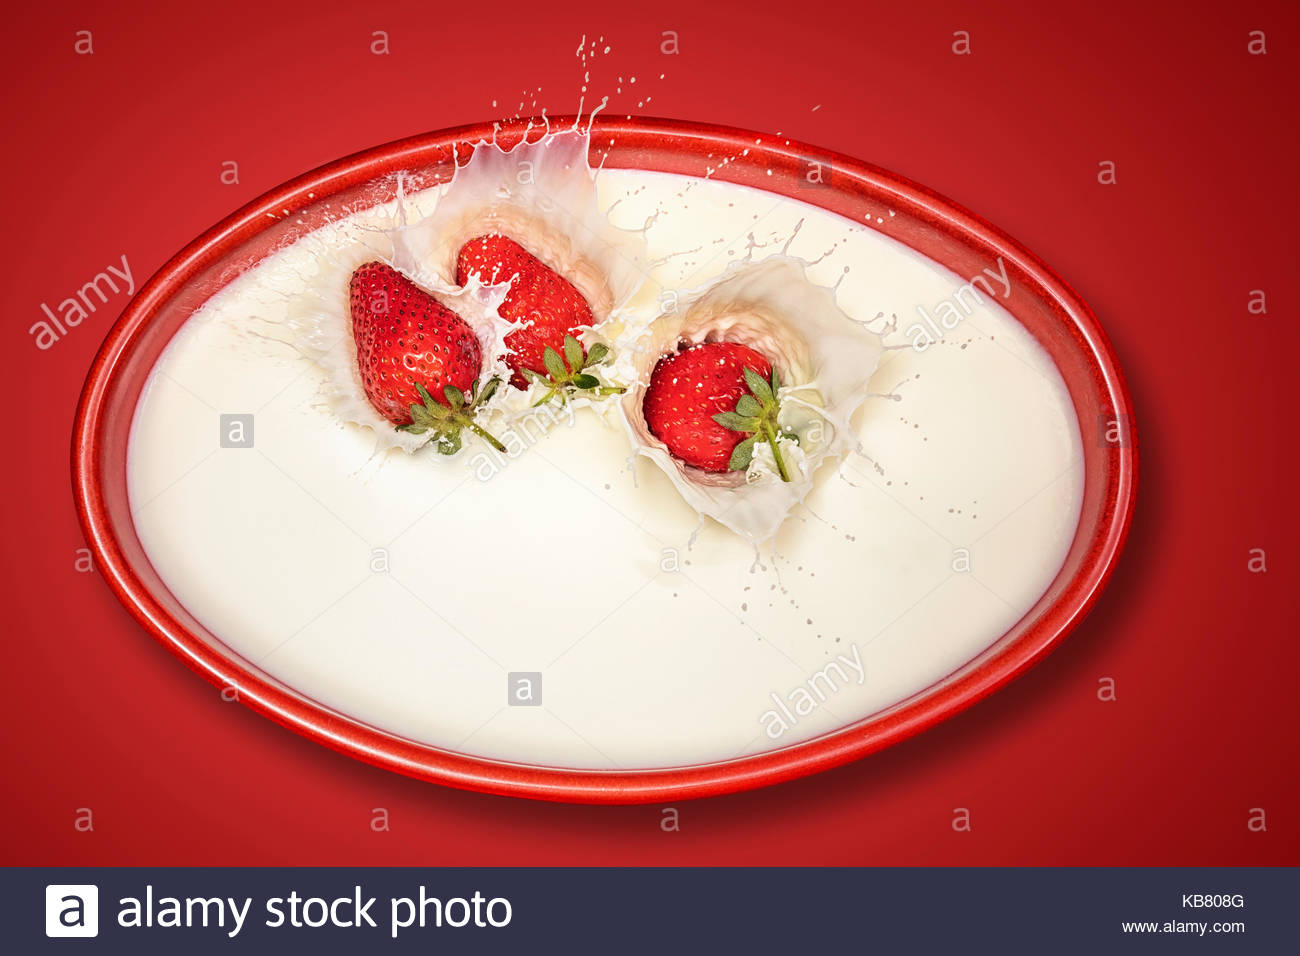 Fresh Strawberries splashing in a colored bowl of  white milk against a red background and viewed directly from - Stock Image